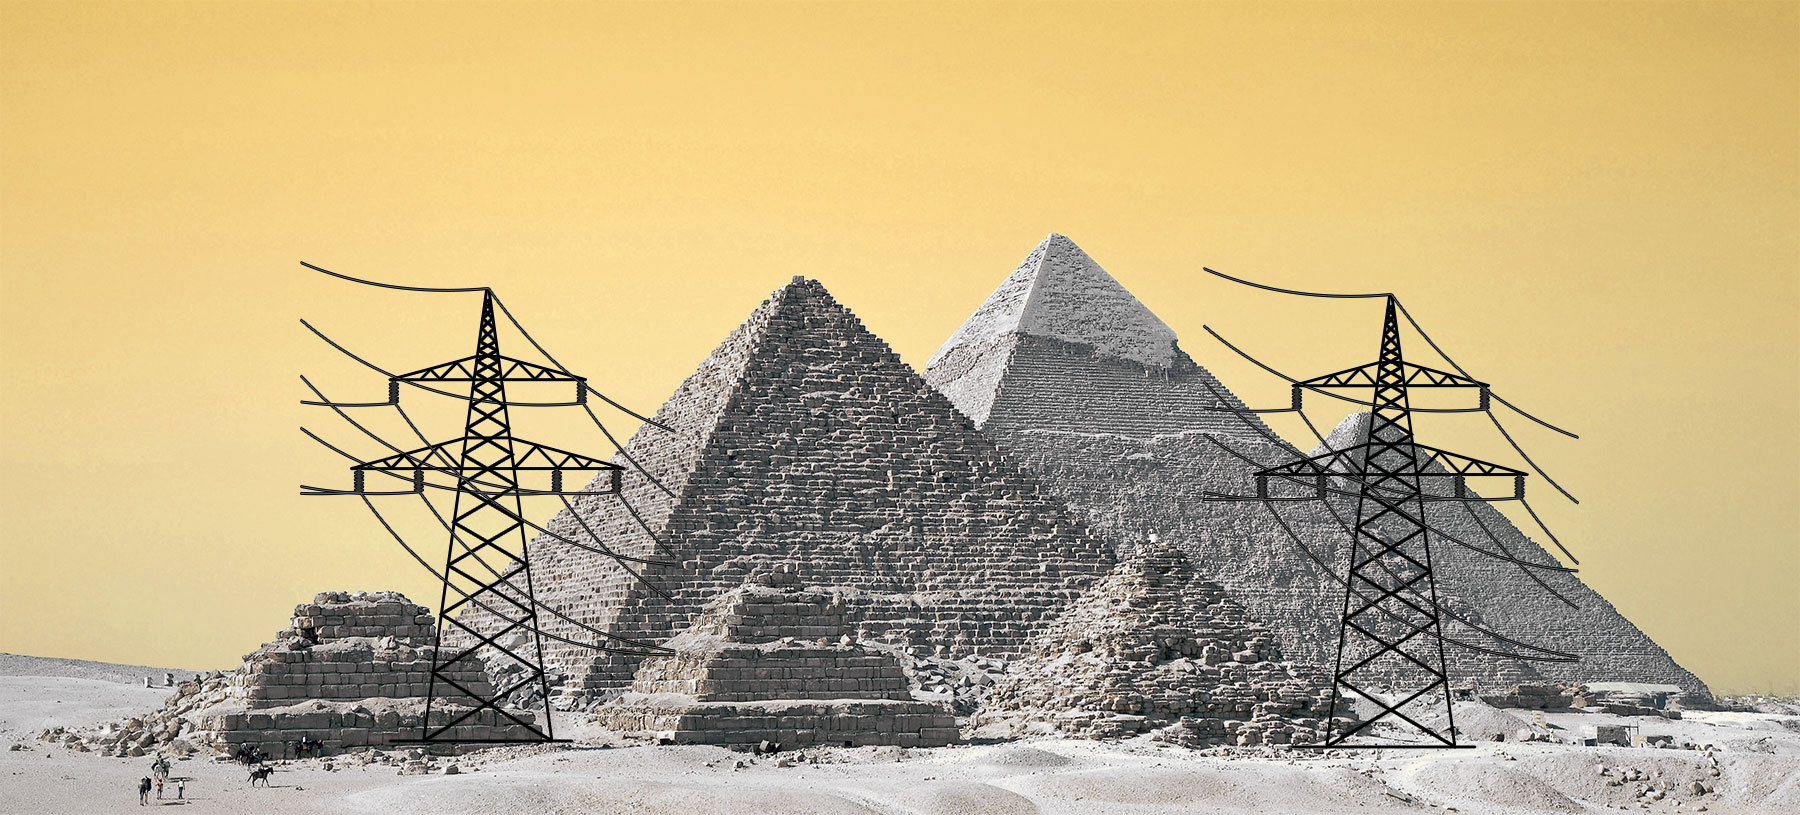 Power lines on the Pyramid of Giza.